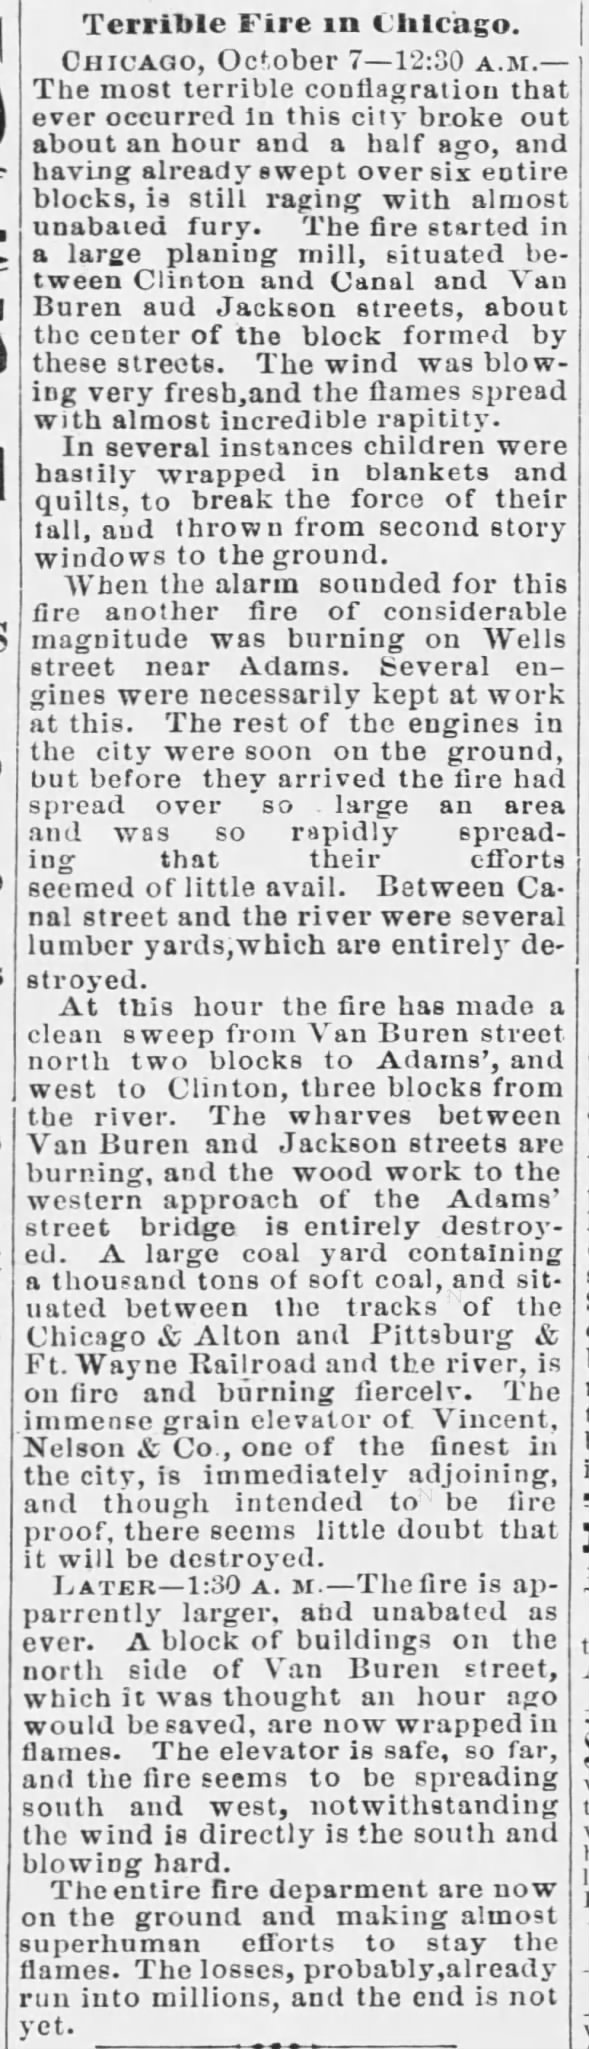 Terrible Fire in Chicago 1871